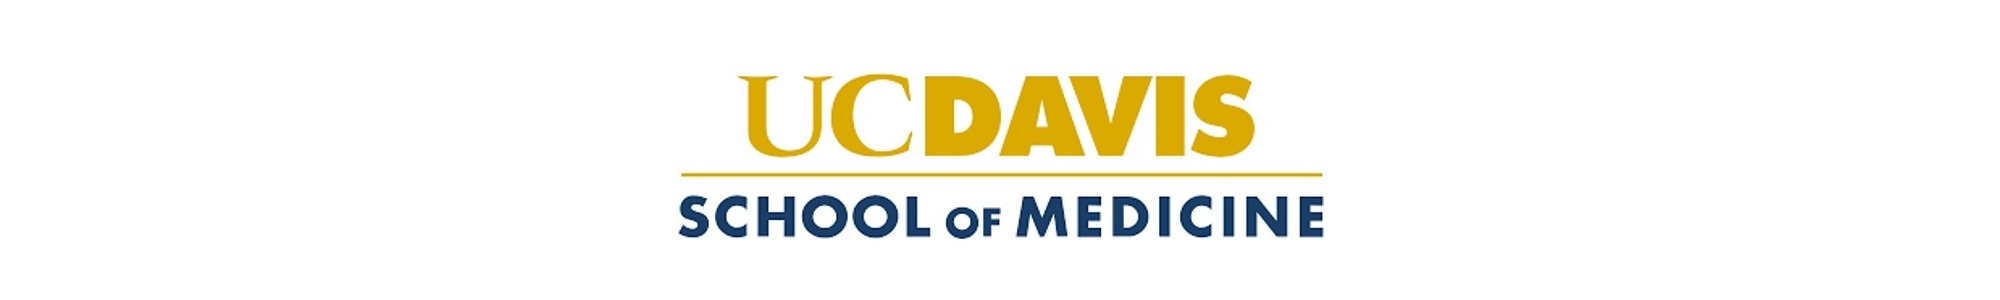 University of California, Davis School of Medicine